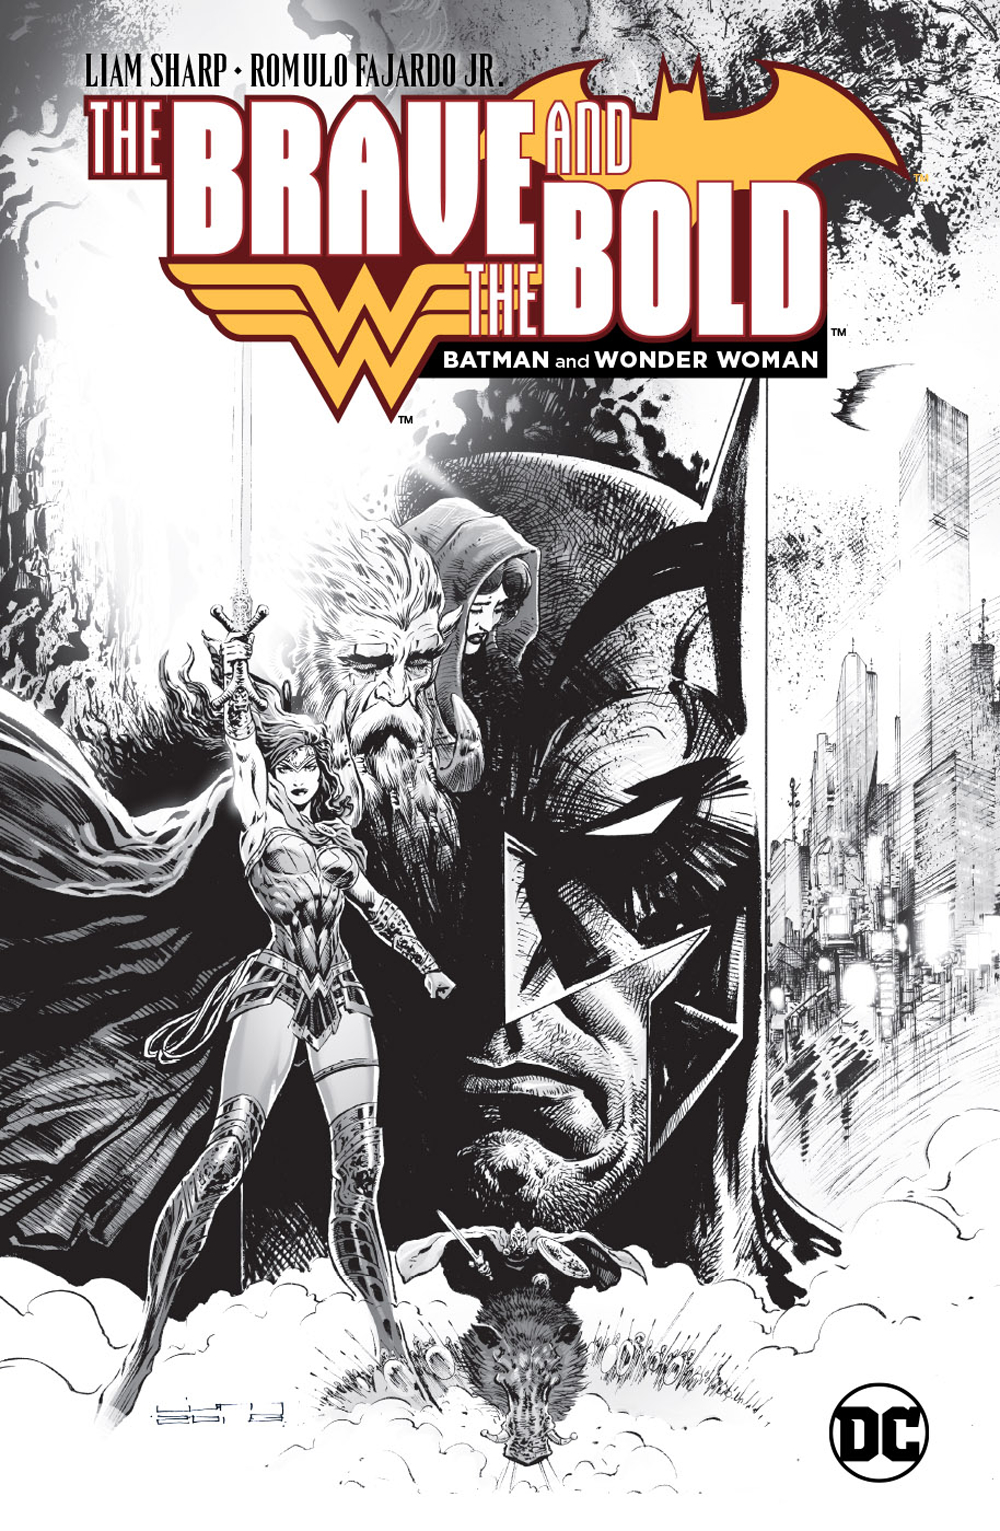 LCSD 2018 BRAVE AND THE BOLD BATMAN AND WONDER WOMAN HC